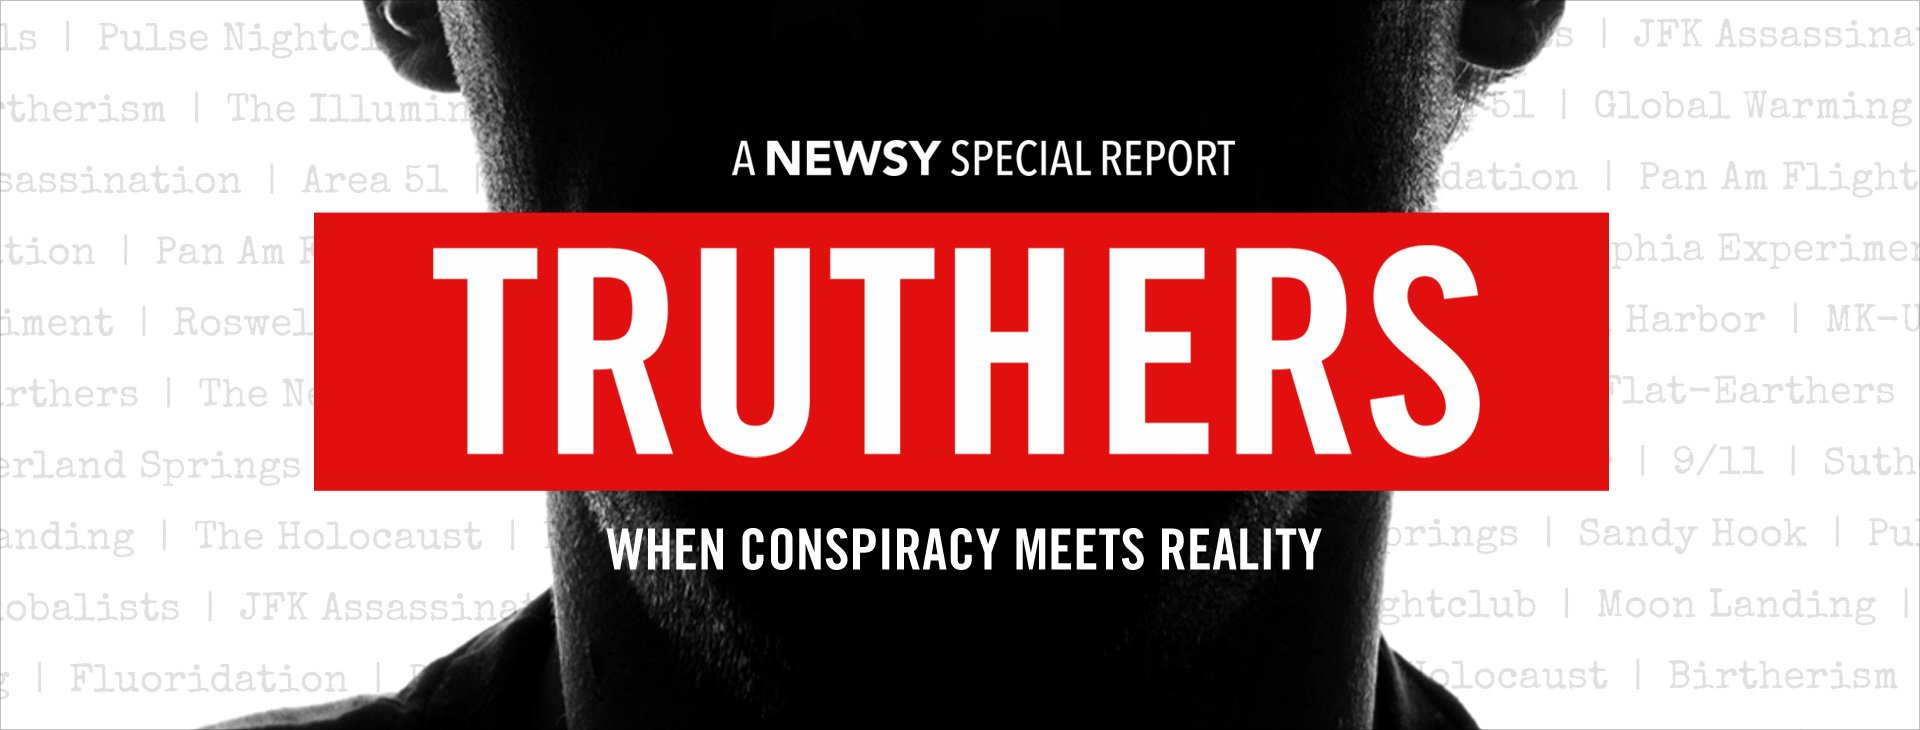 Truthers: When Conspiracy Meets Reality